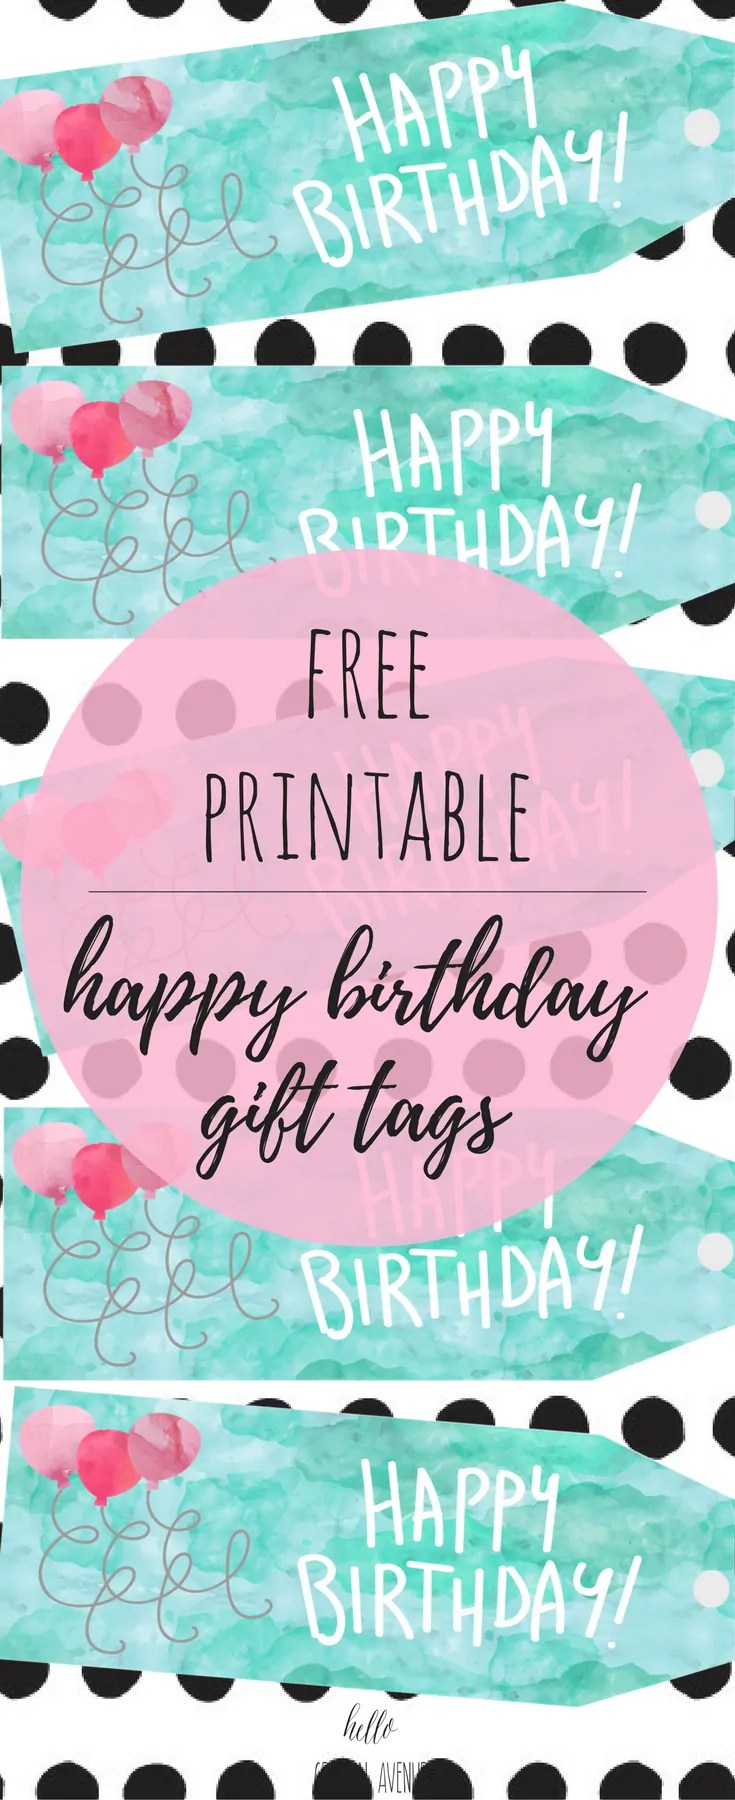 picture about Happy Birthday Tag Printable referred to as Absolutely free Watercolor Satisfied Birthday Reward Tags - Hi there Central Road